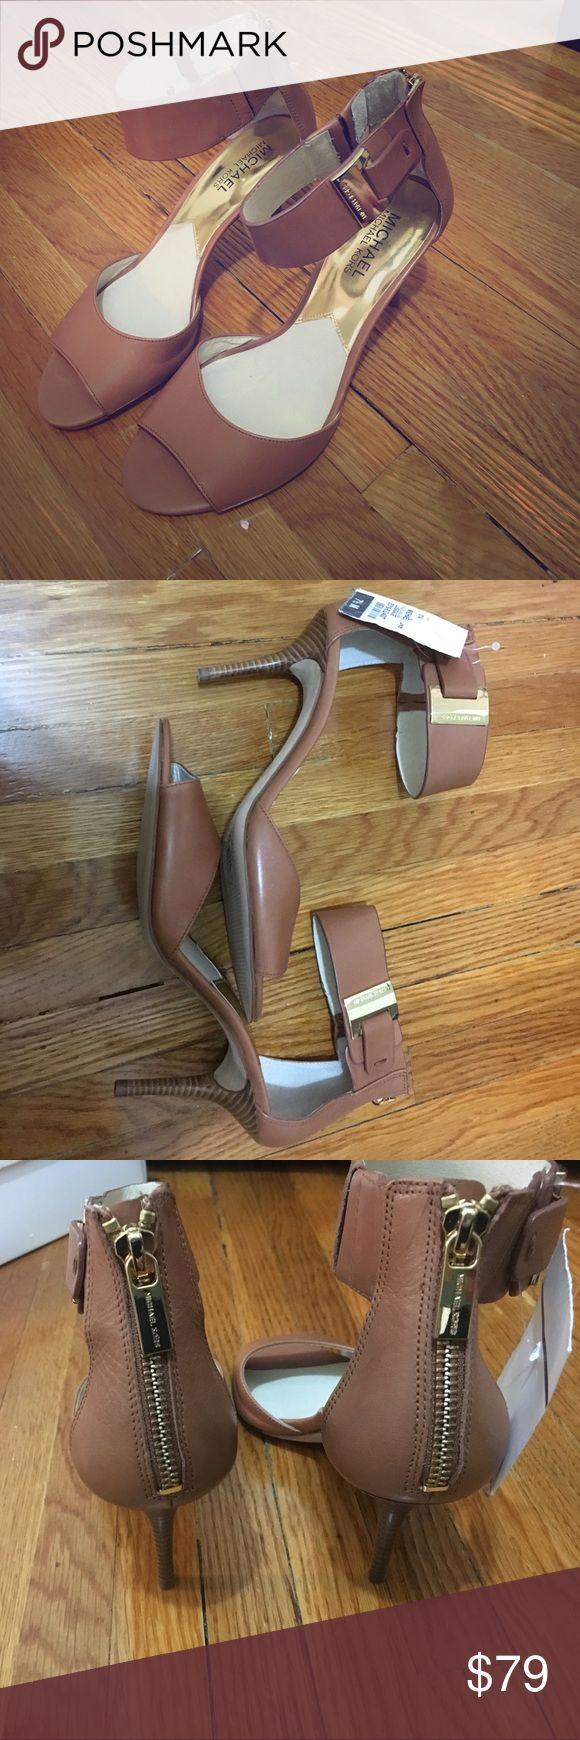 NWT Michael Kors ankle wrap peep toe heels I can't wear heels but I wish I could! These Michael Kors tan brown shoes with gold hardware are so cute to wear with jeans or to dress up! They are brand new with tags!! Michael Kors Shoes Heels